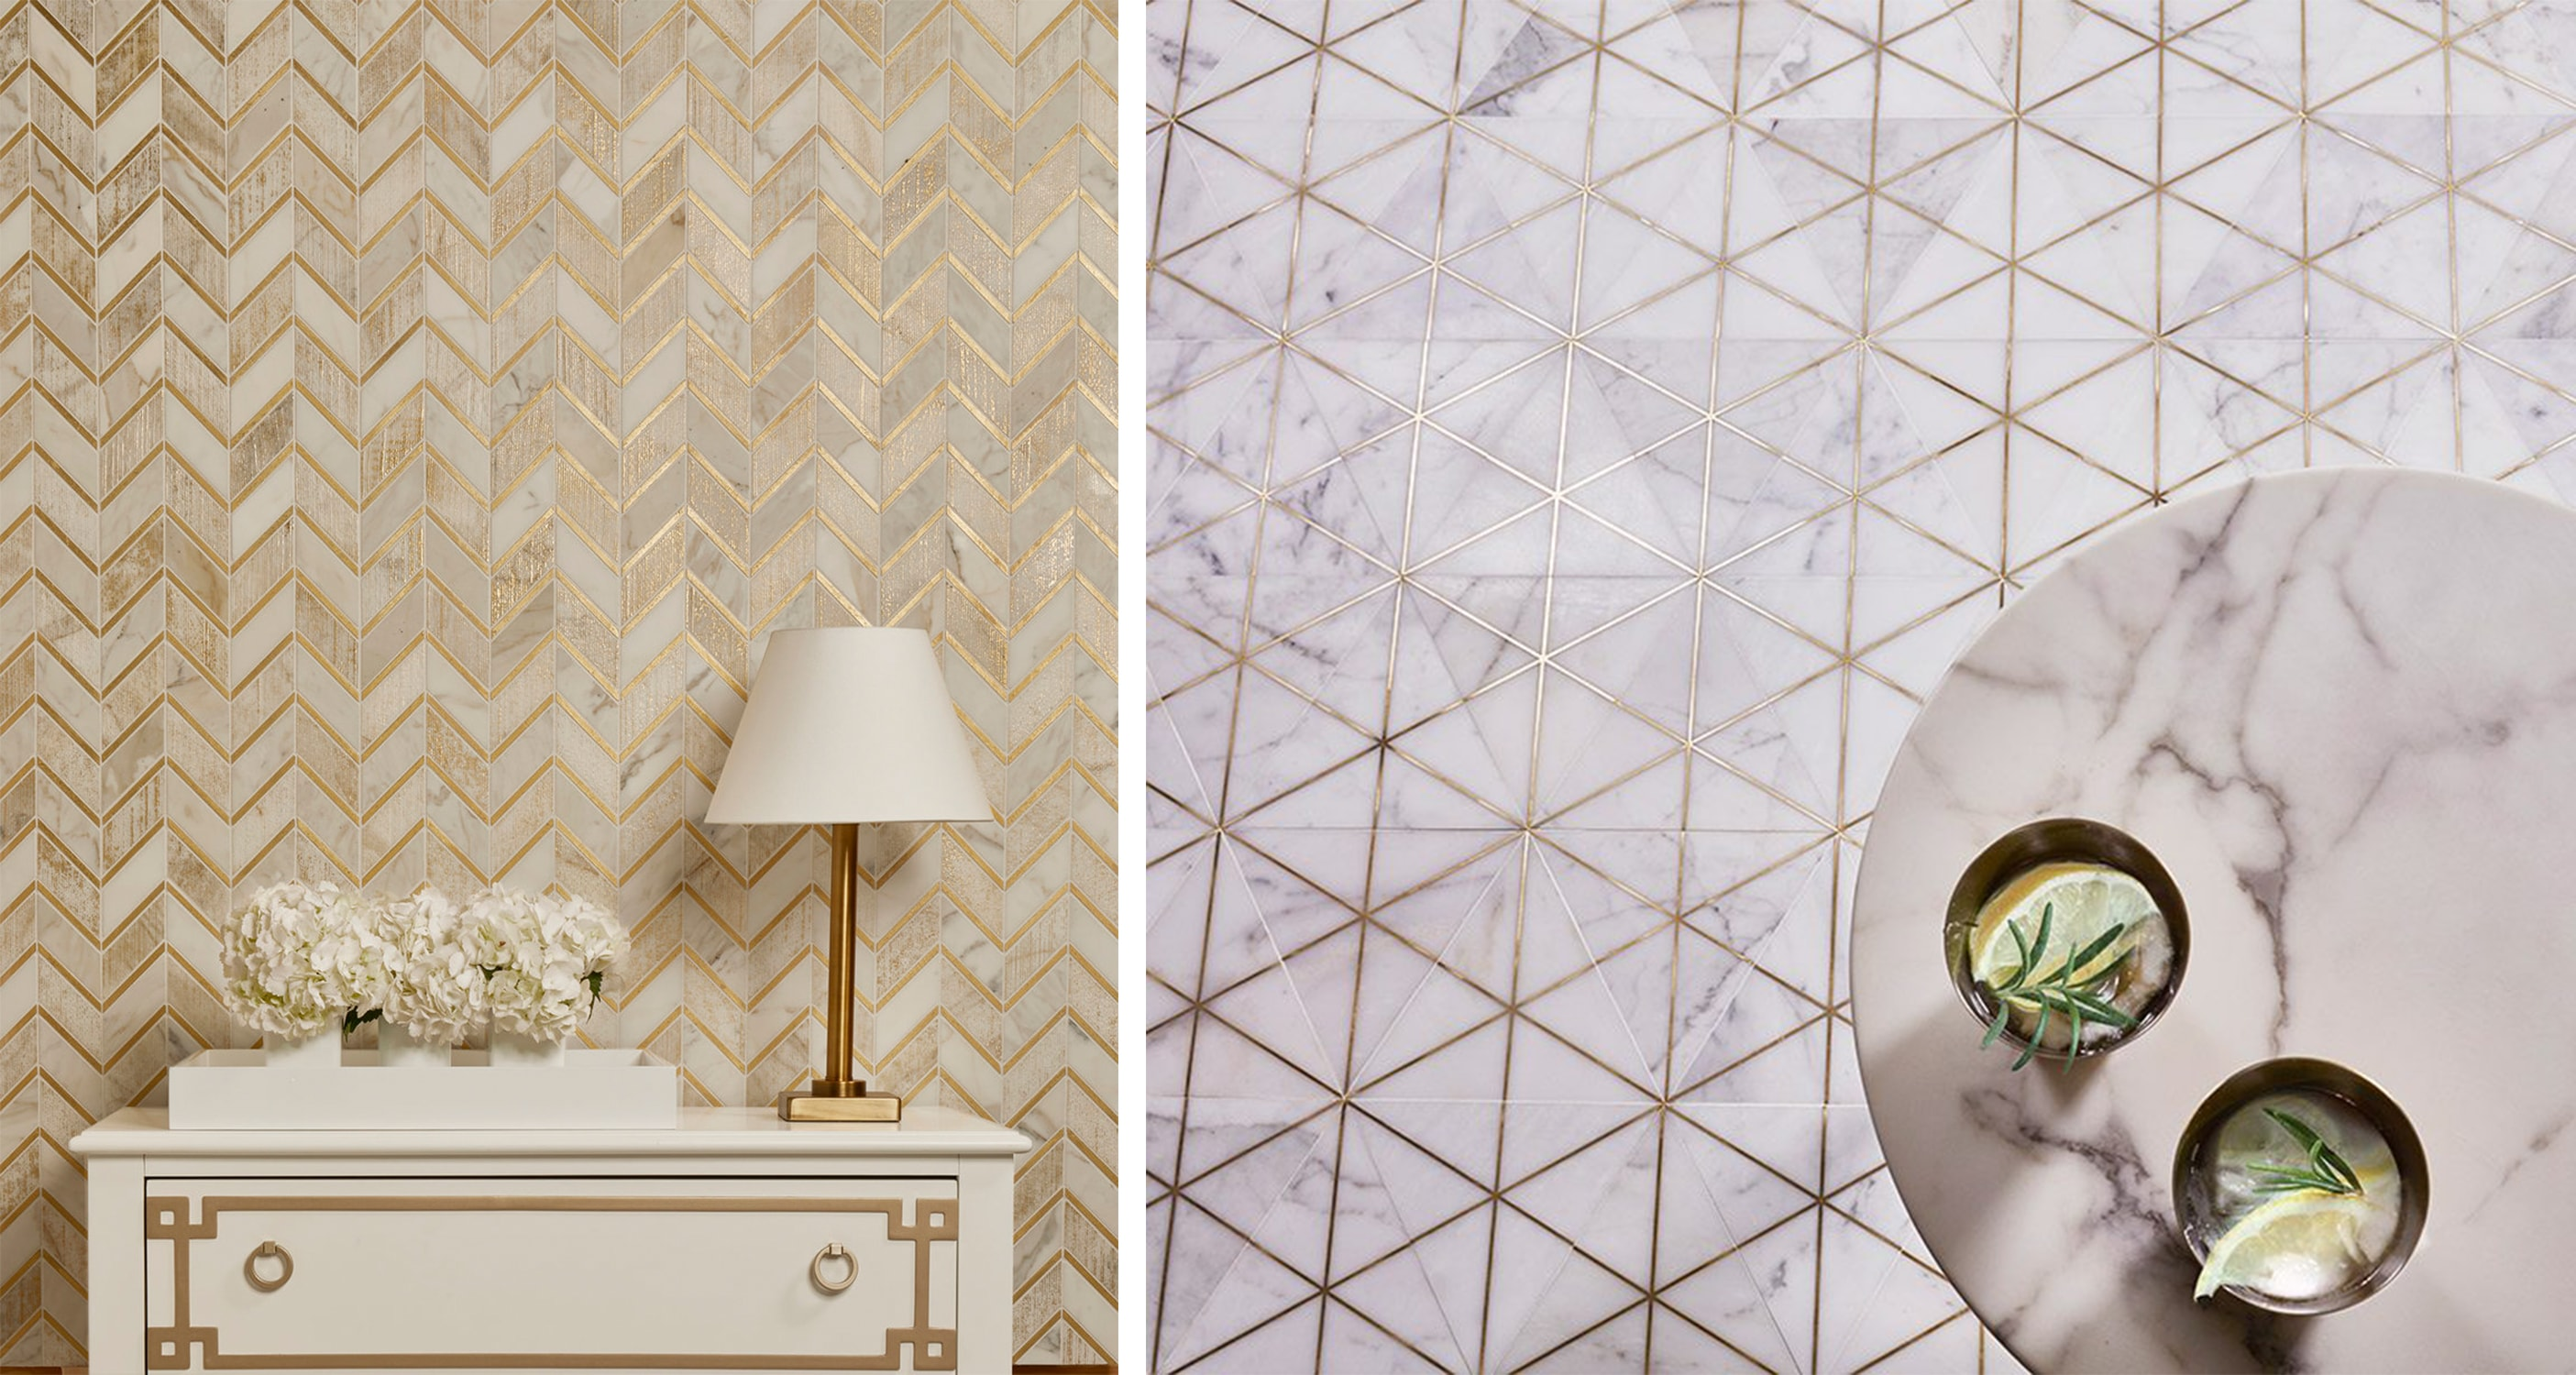 akdo tile with metal inlay - it's all in the details! - darci hether new york